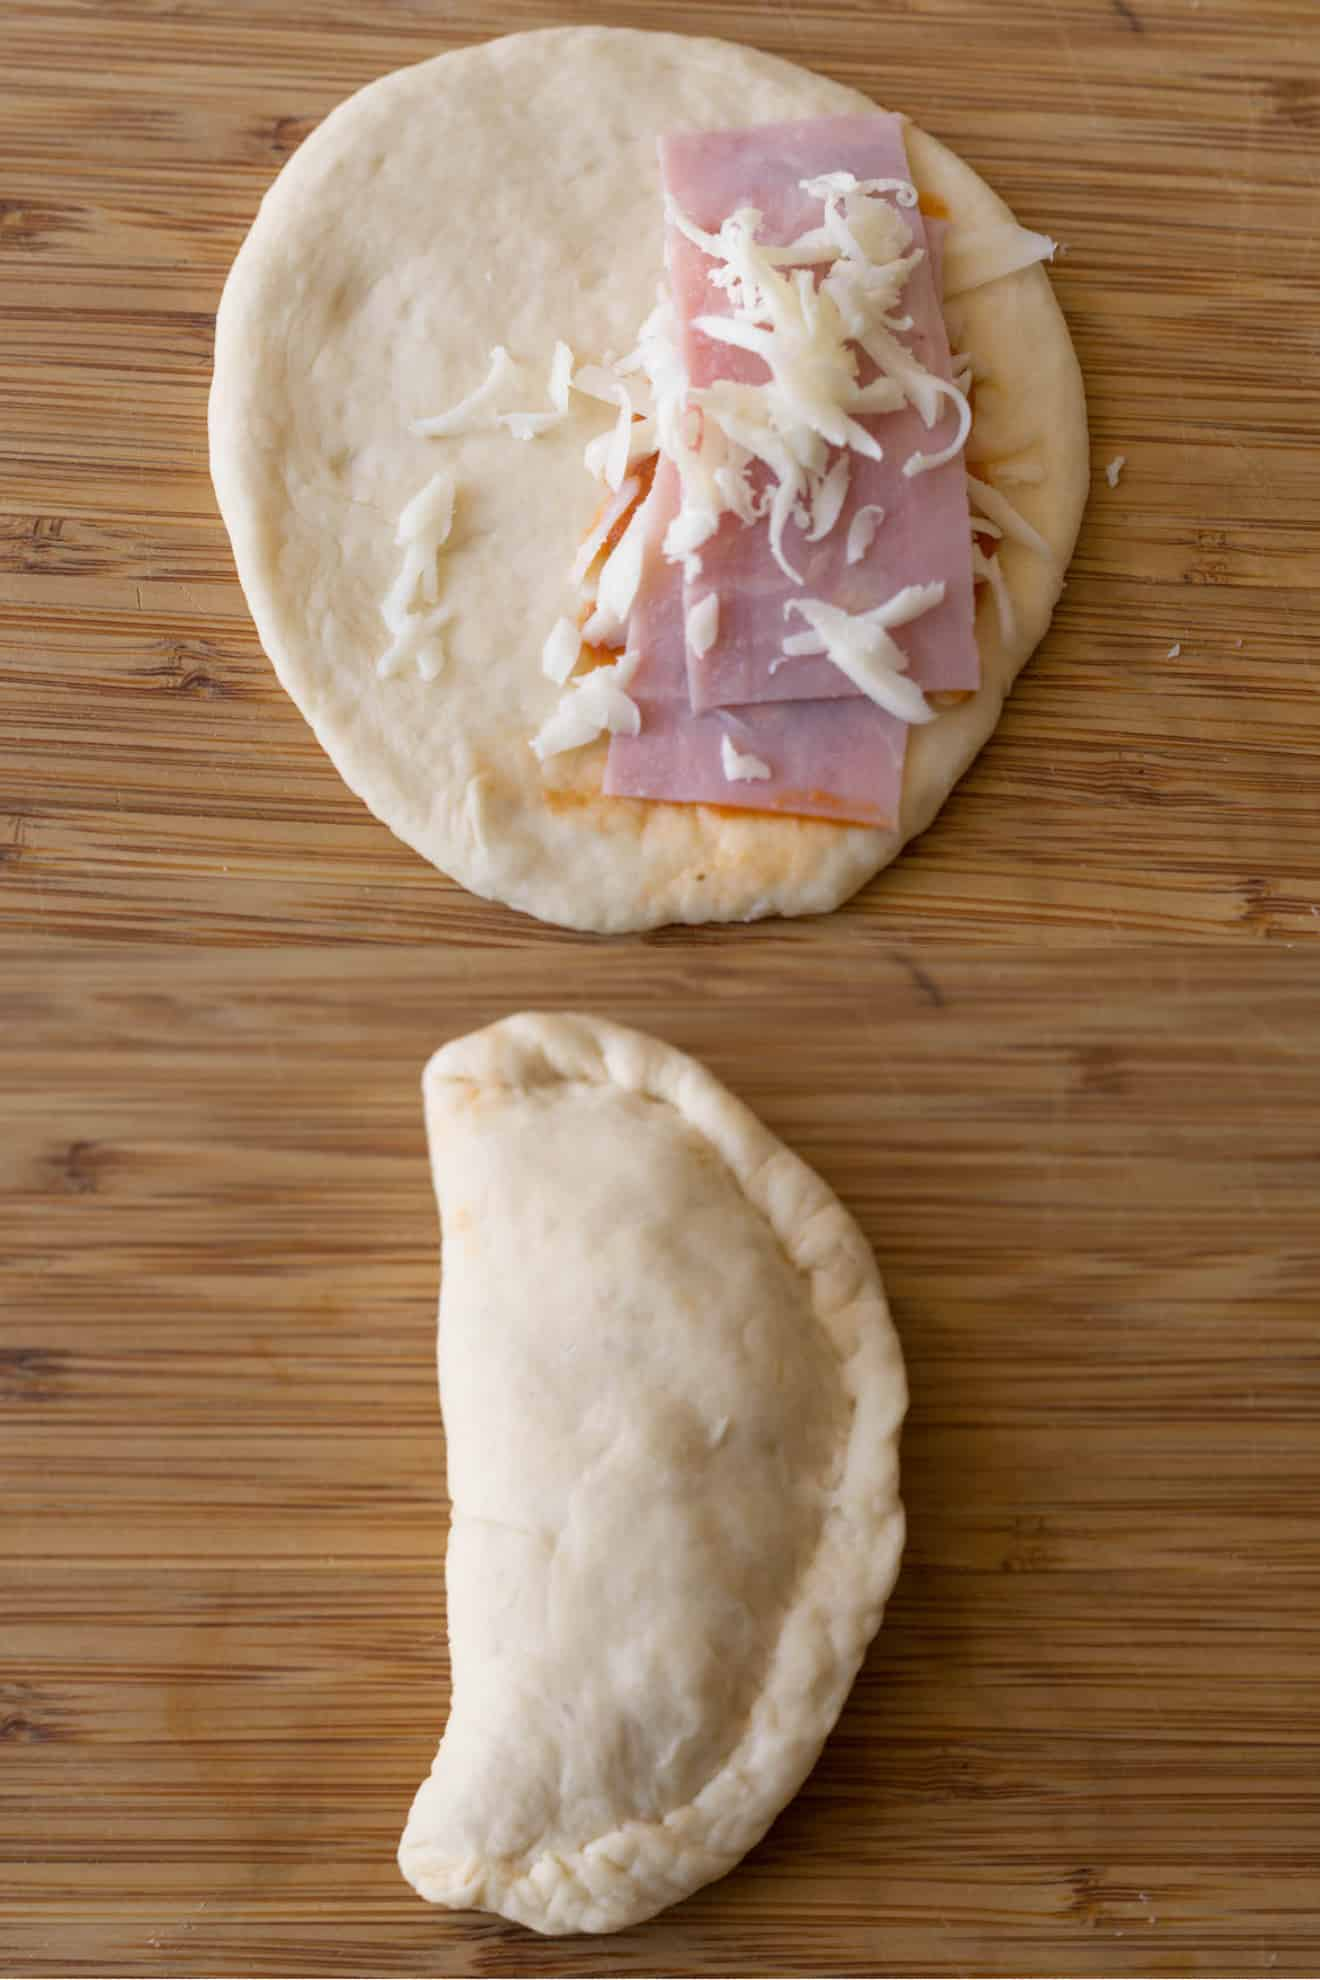 The making of a ham and cheese calzone. Uncooked pizza dough with ham and cheese, then folded over